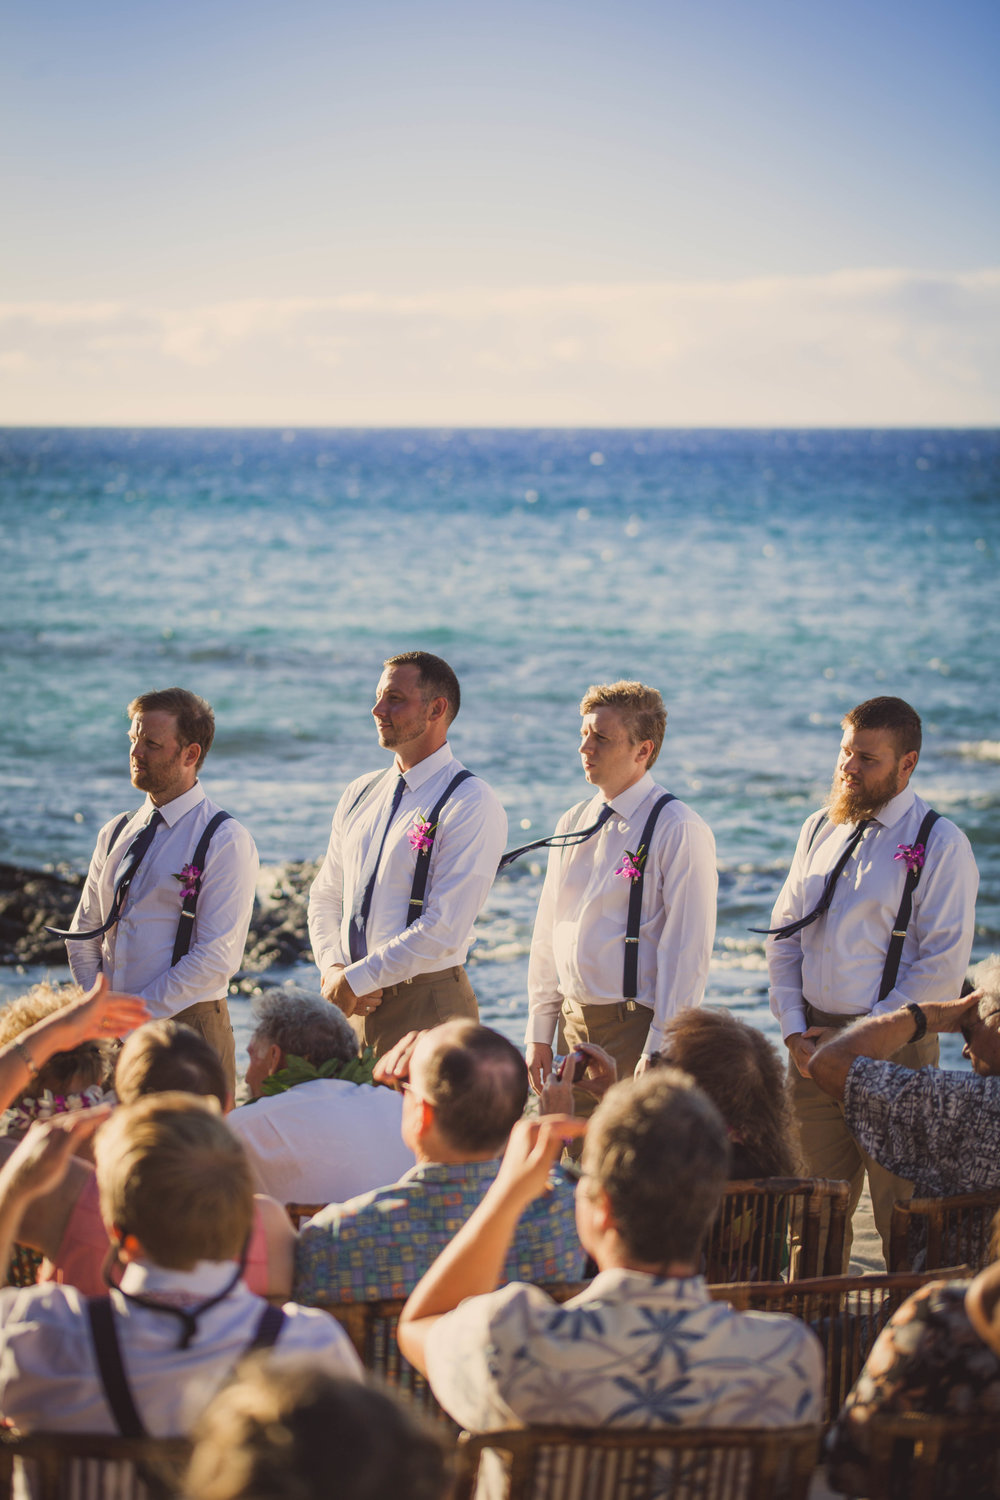 big island hawaii fairmont orchid beach wedding © kelilina photography 20170812174436-1.jpg